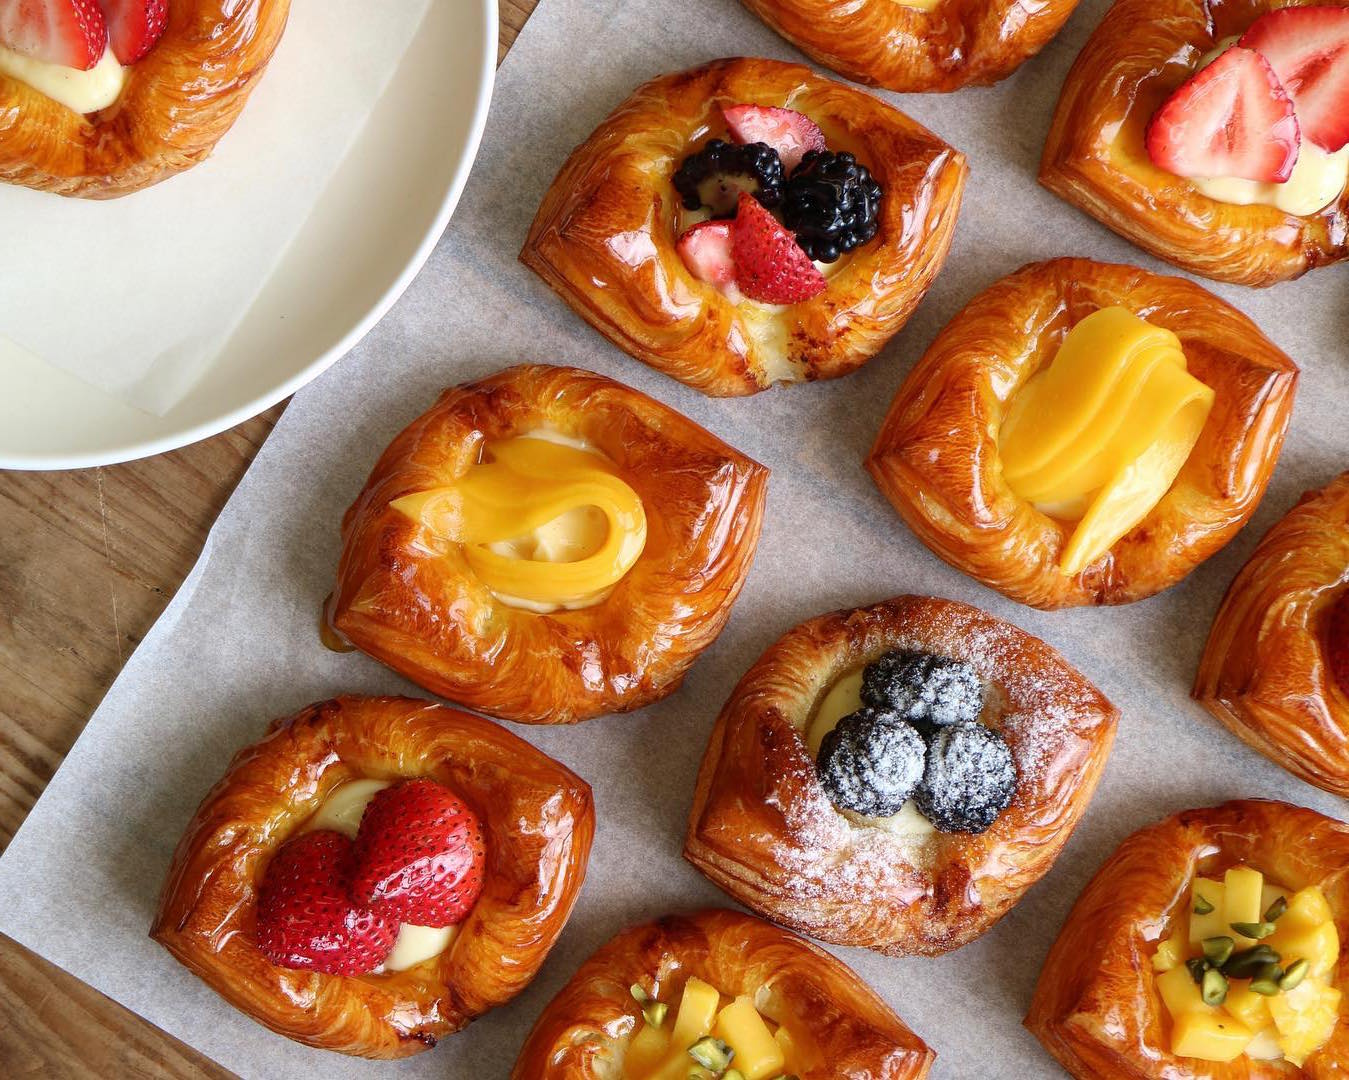 Bakehouse is one of our pics for best French bakeries in Hong Kong